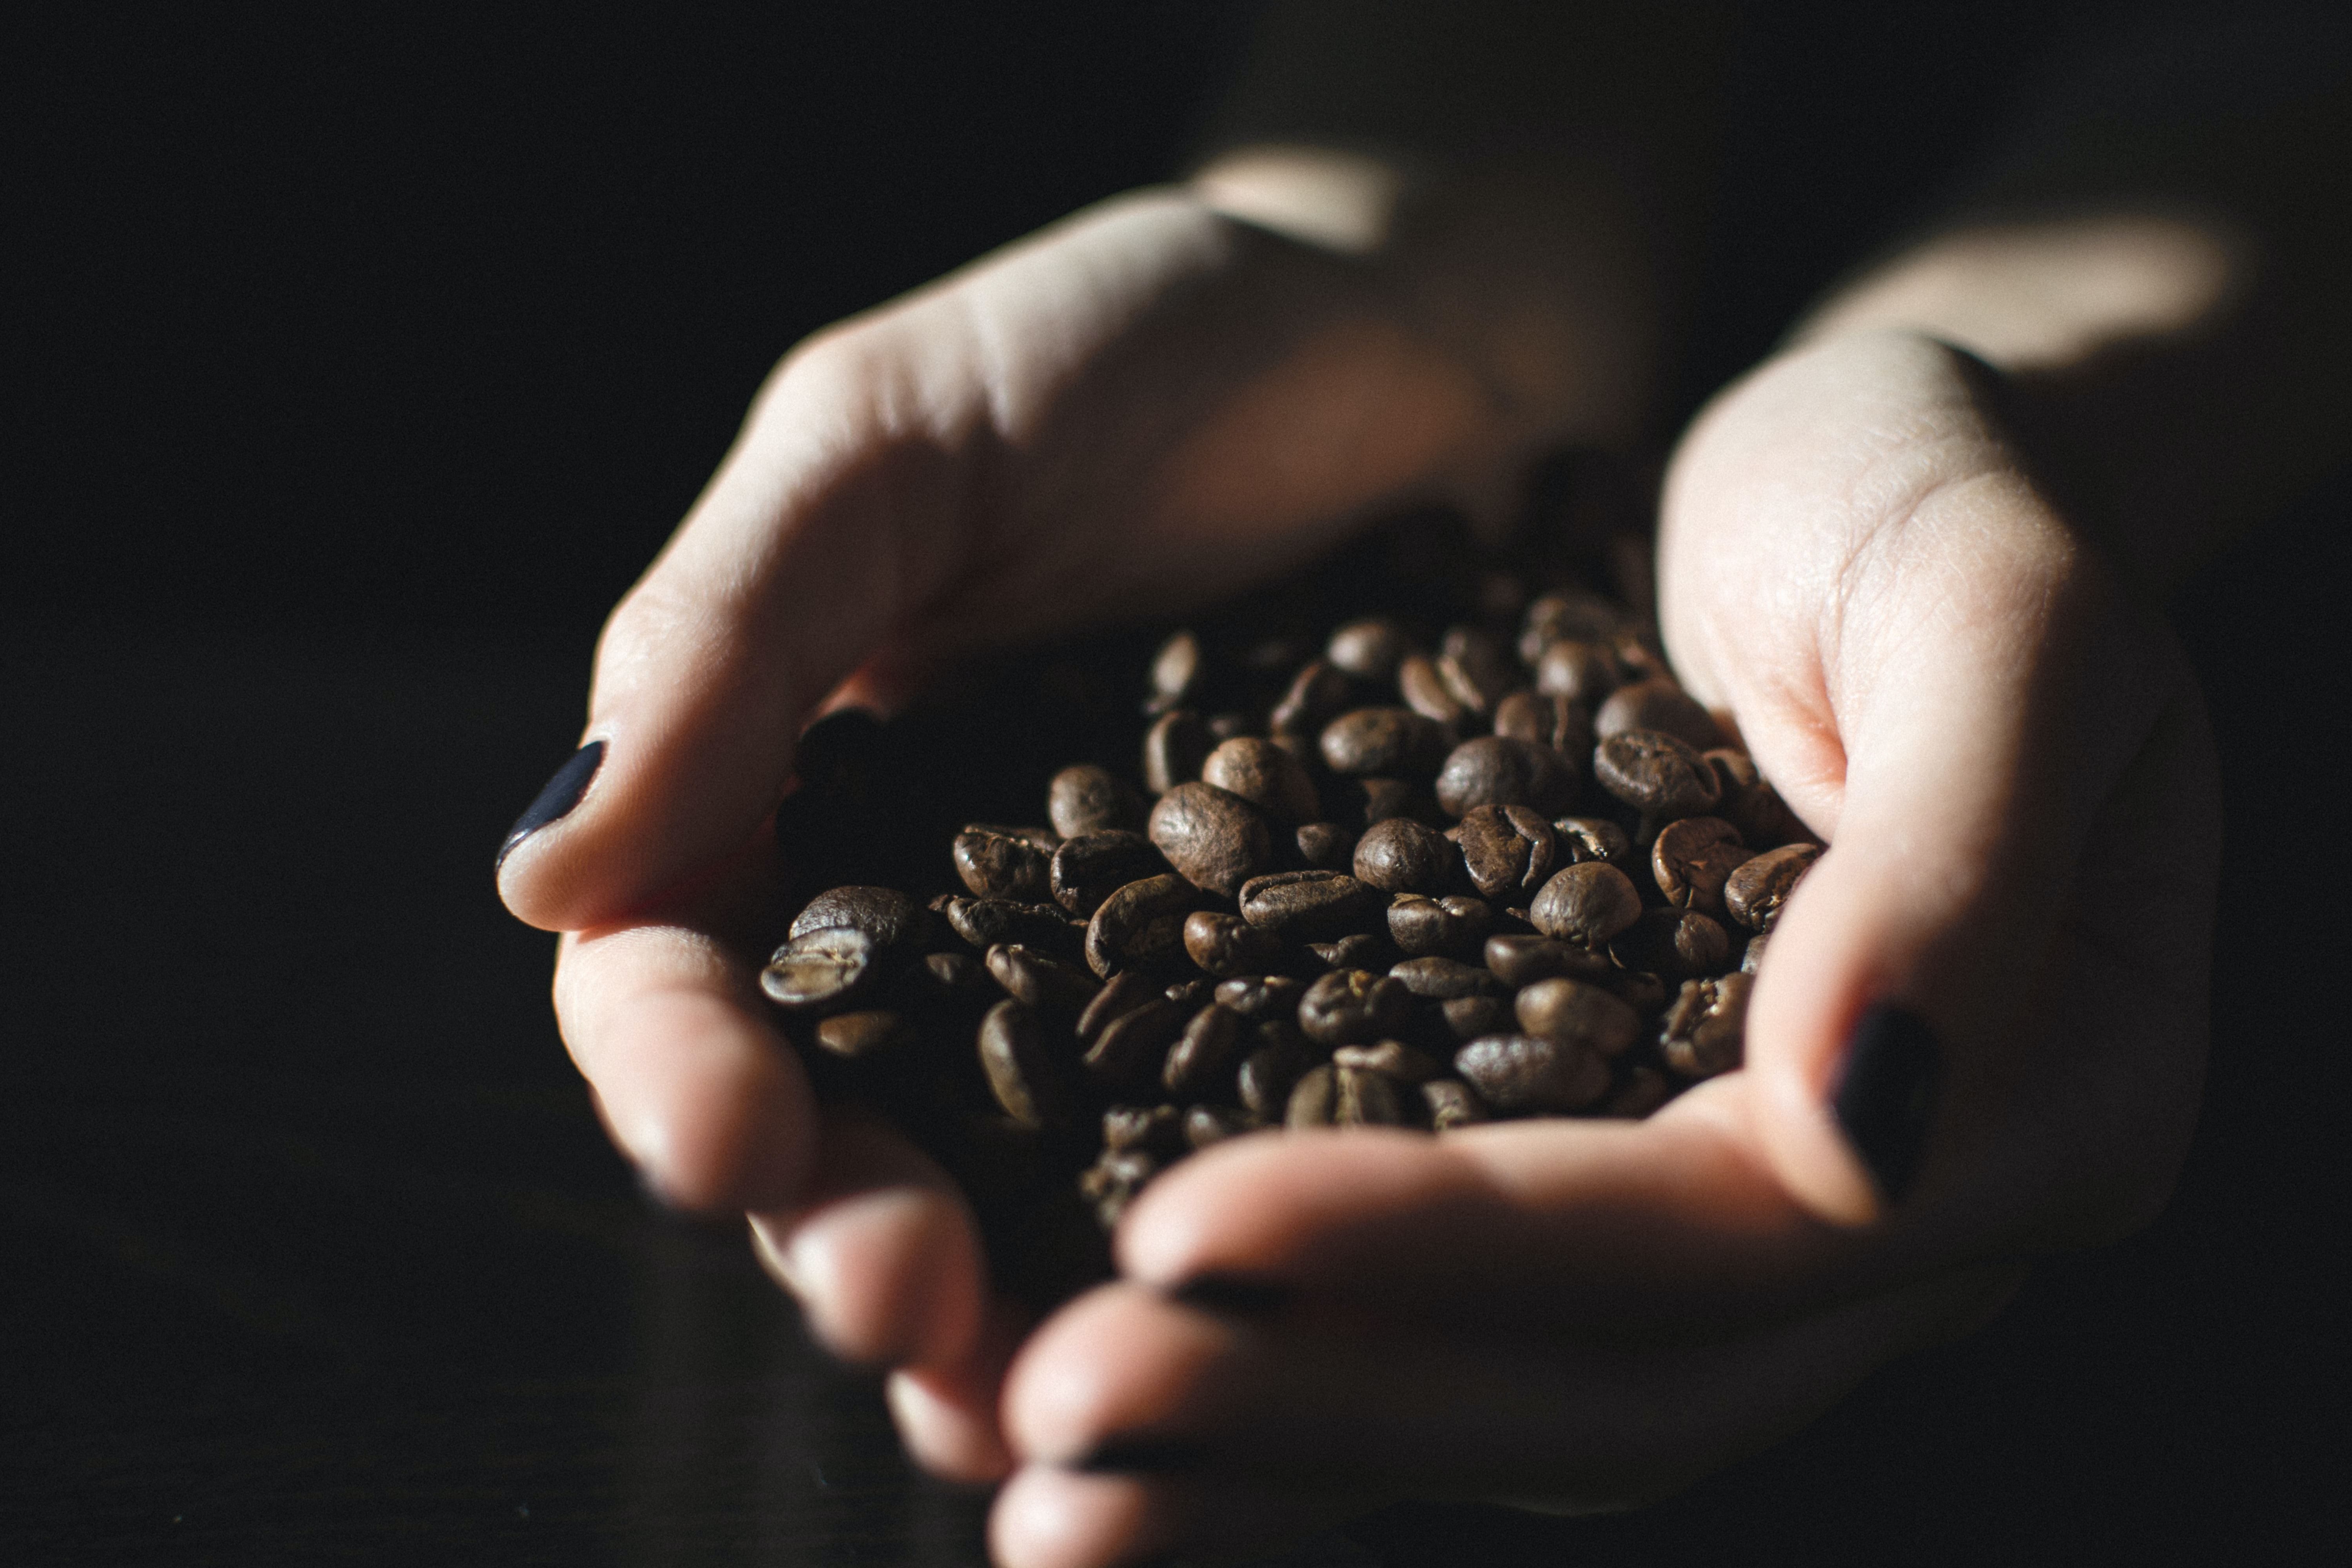 stack of coffee beans on person's hand